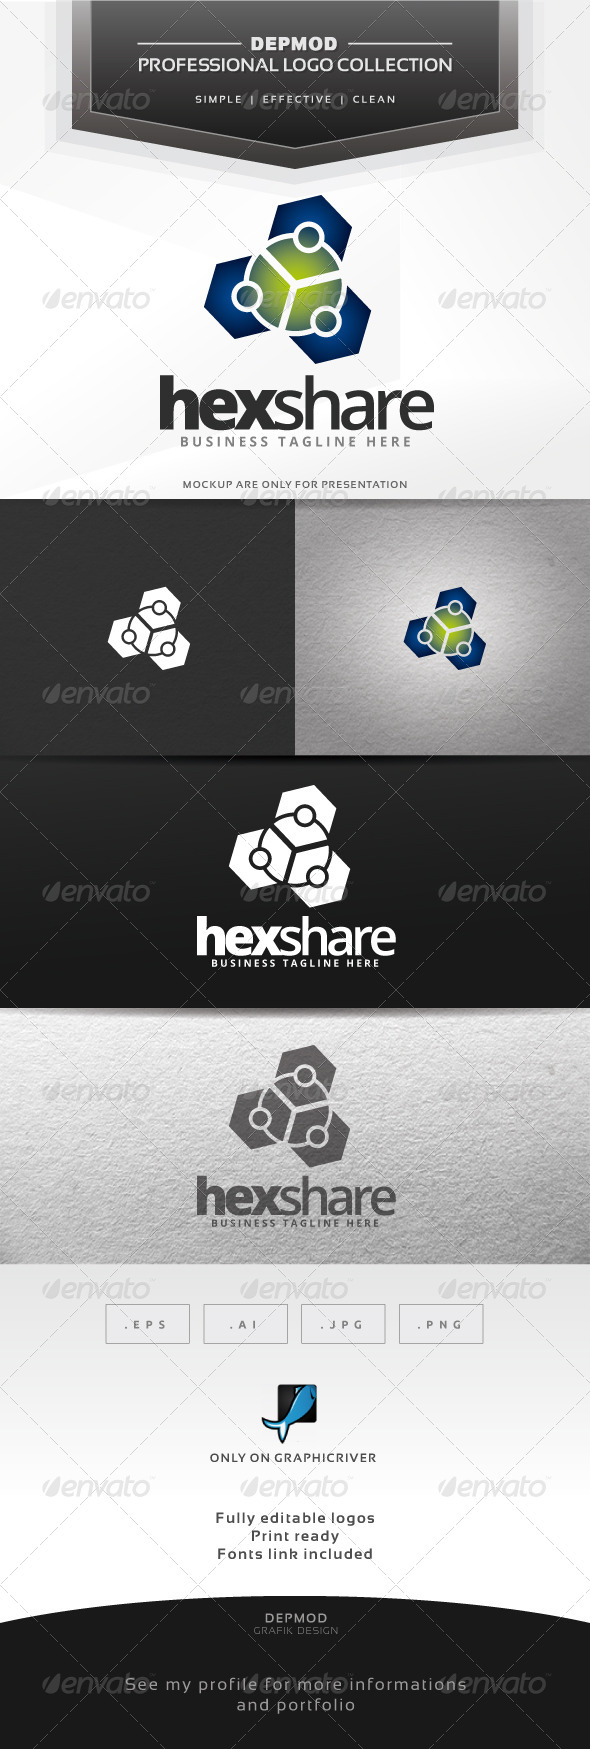 Hex Share Logo - Abstract Logo Templates